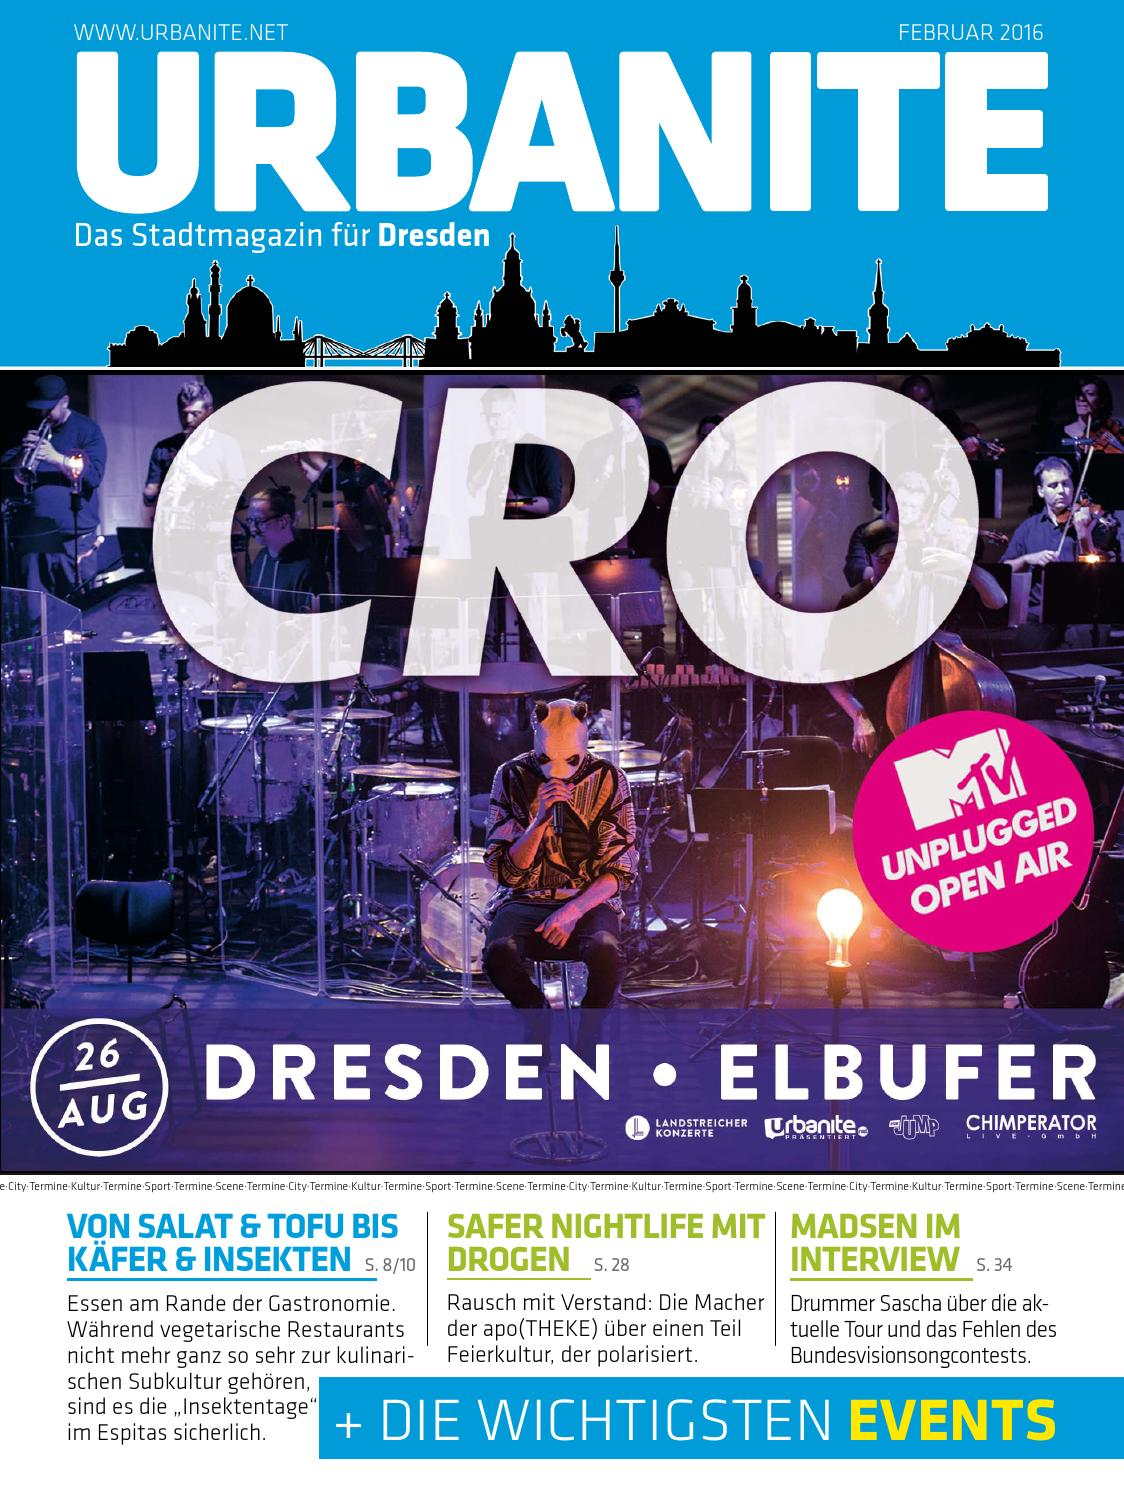 URBANITE - Stadtmagazin Dresden | Februar 2016 by urbanite - issuu